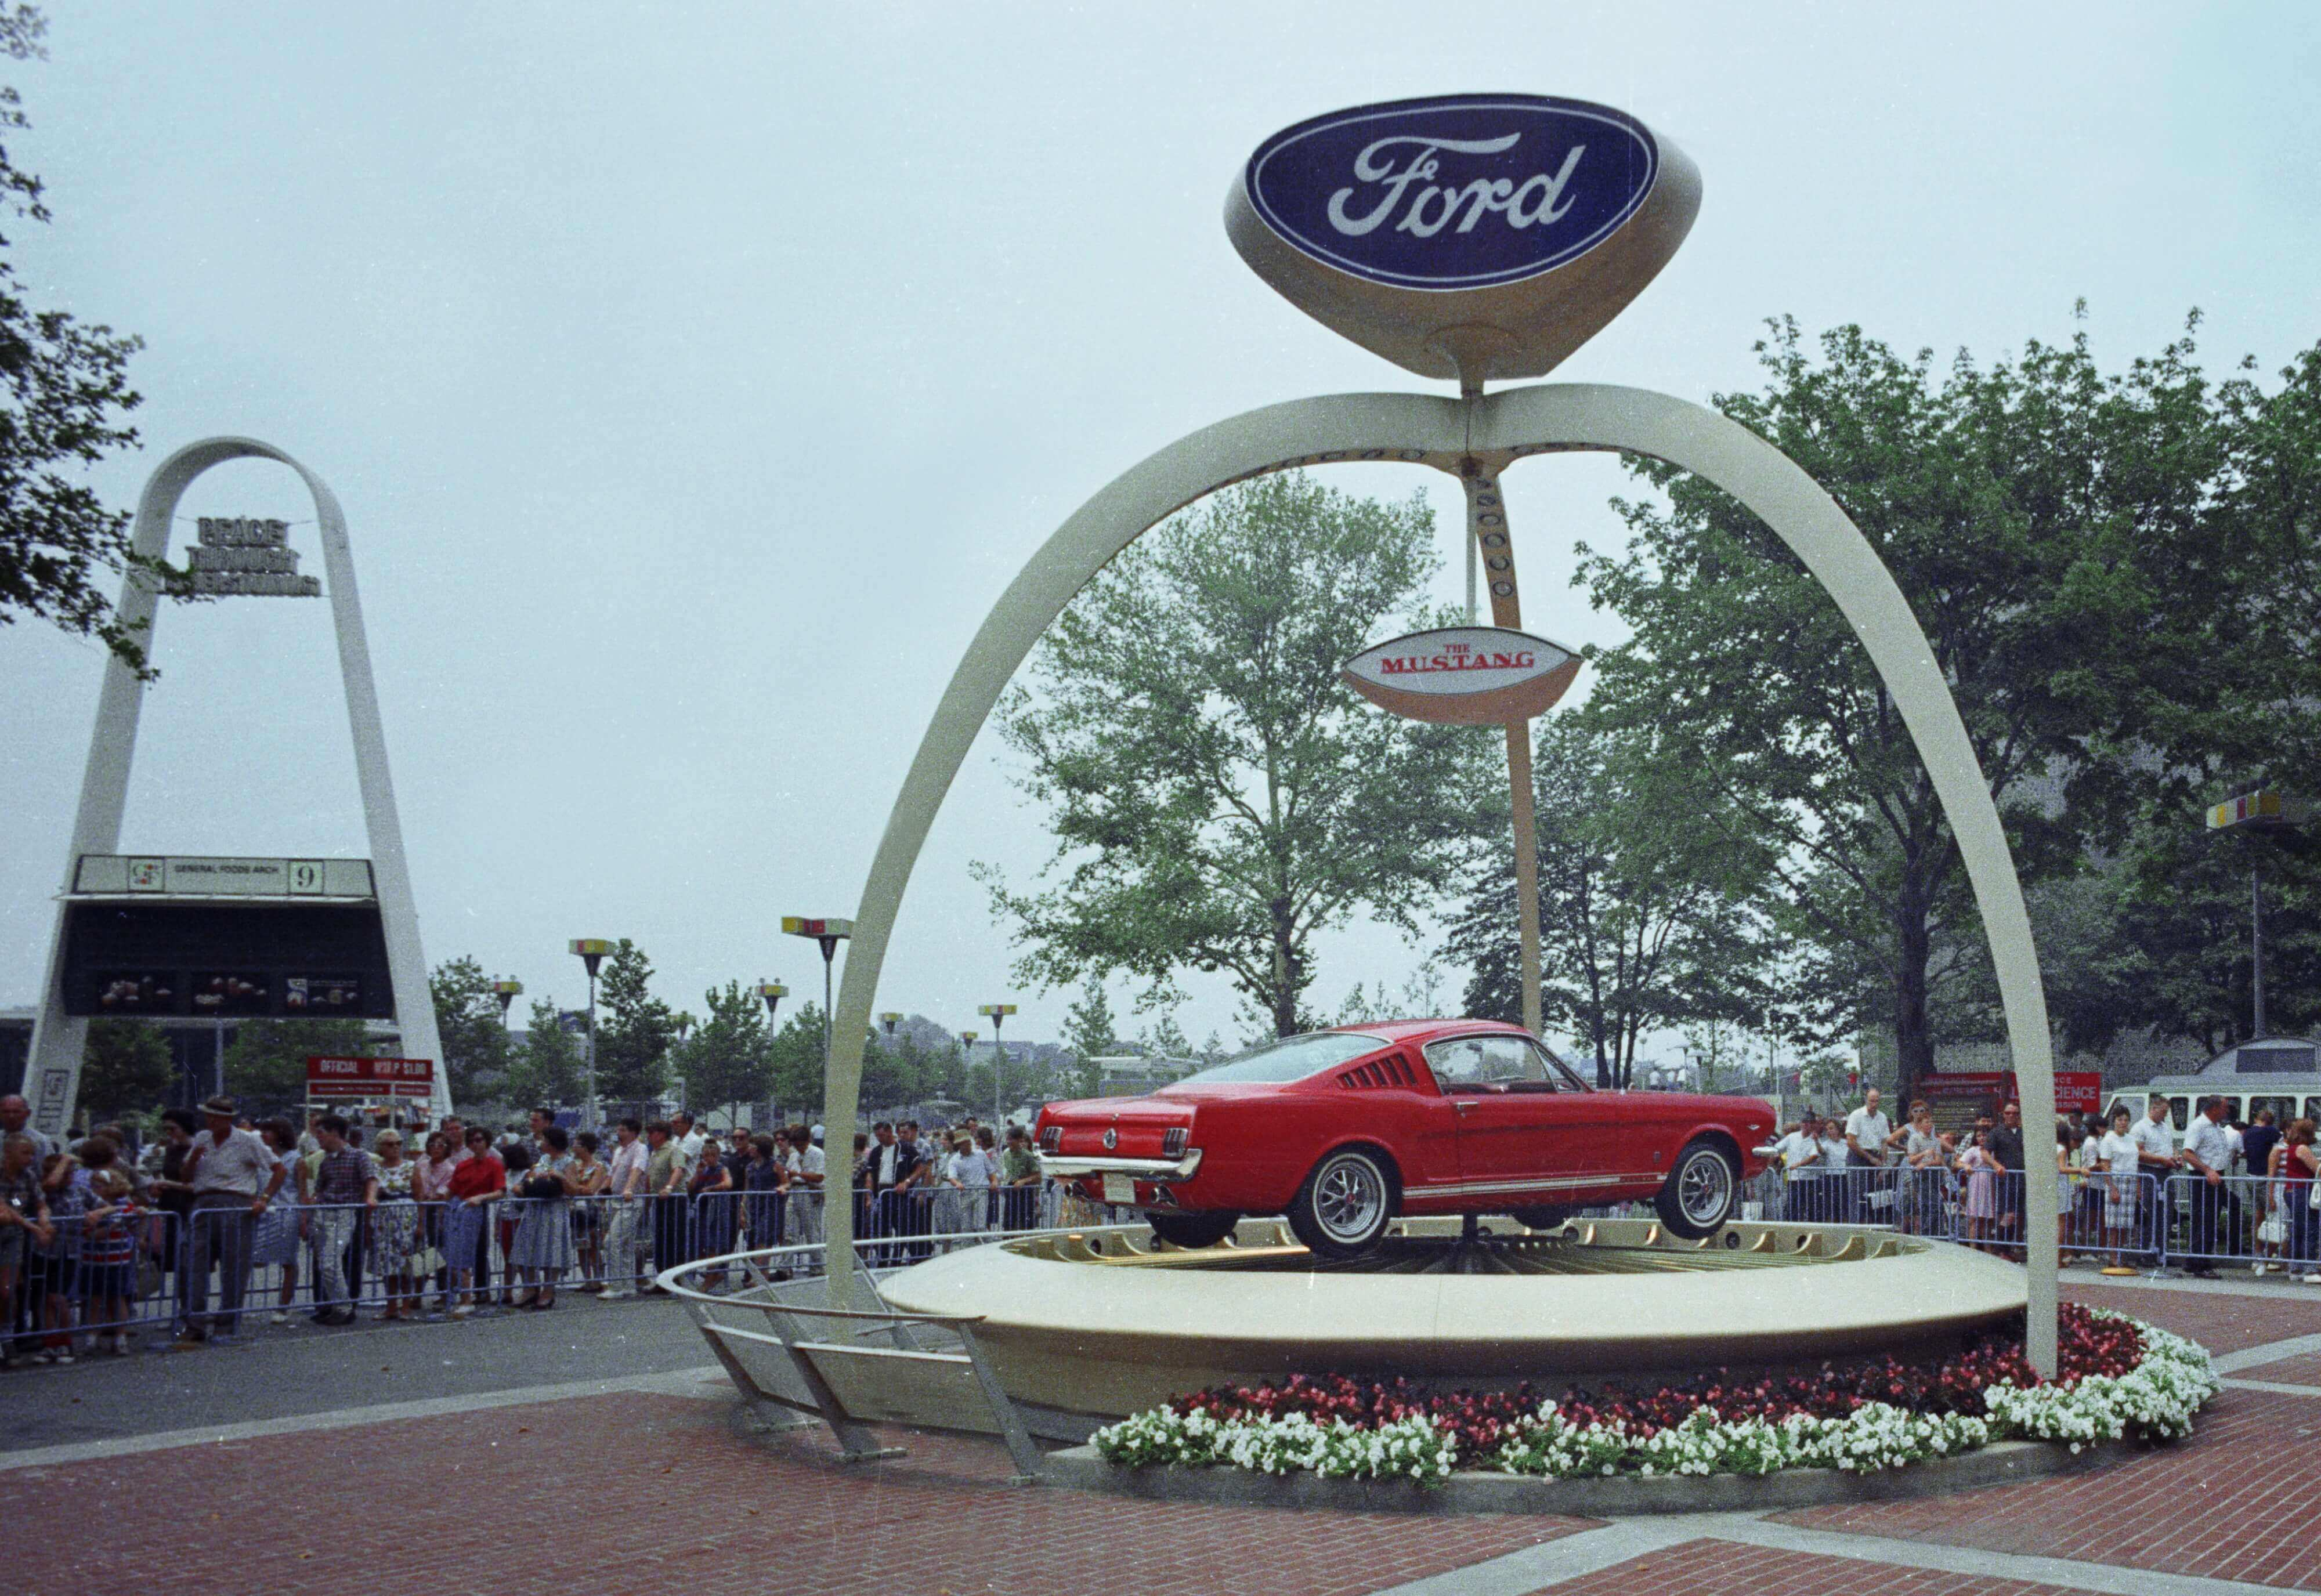 Ford mustang 1964 world's fair